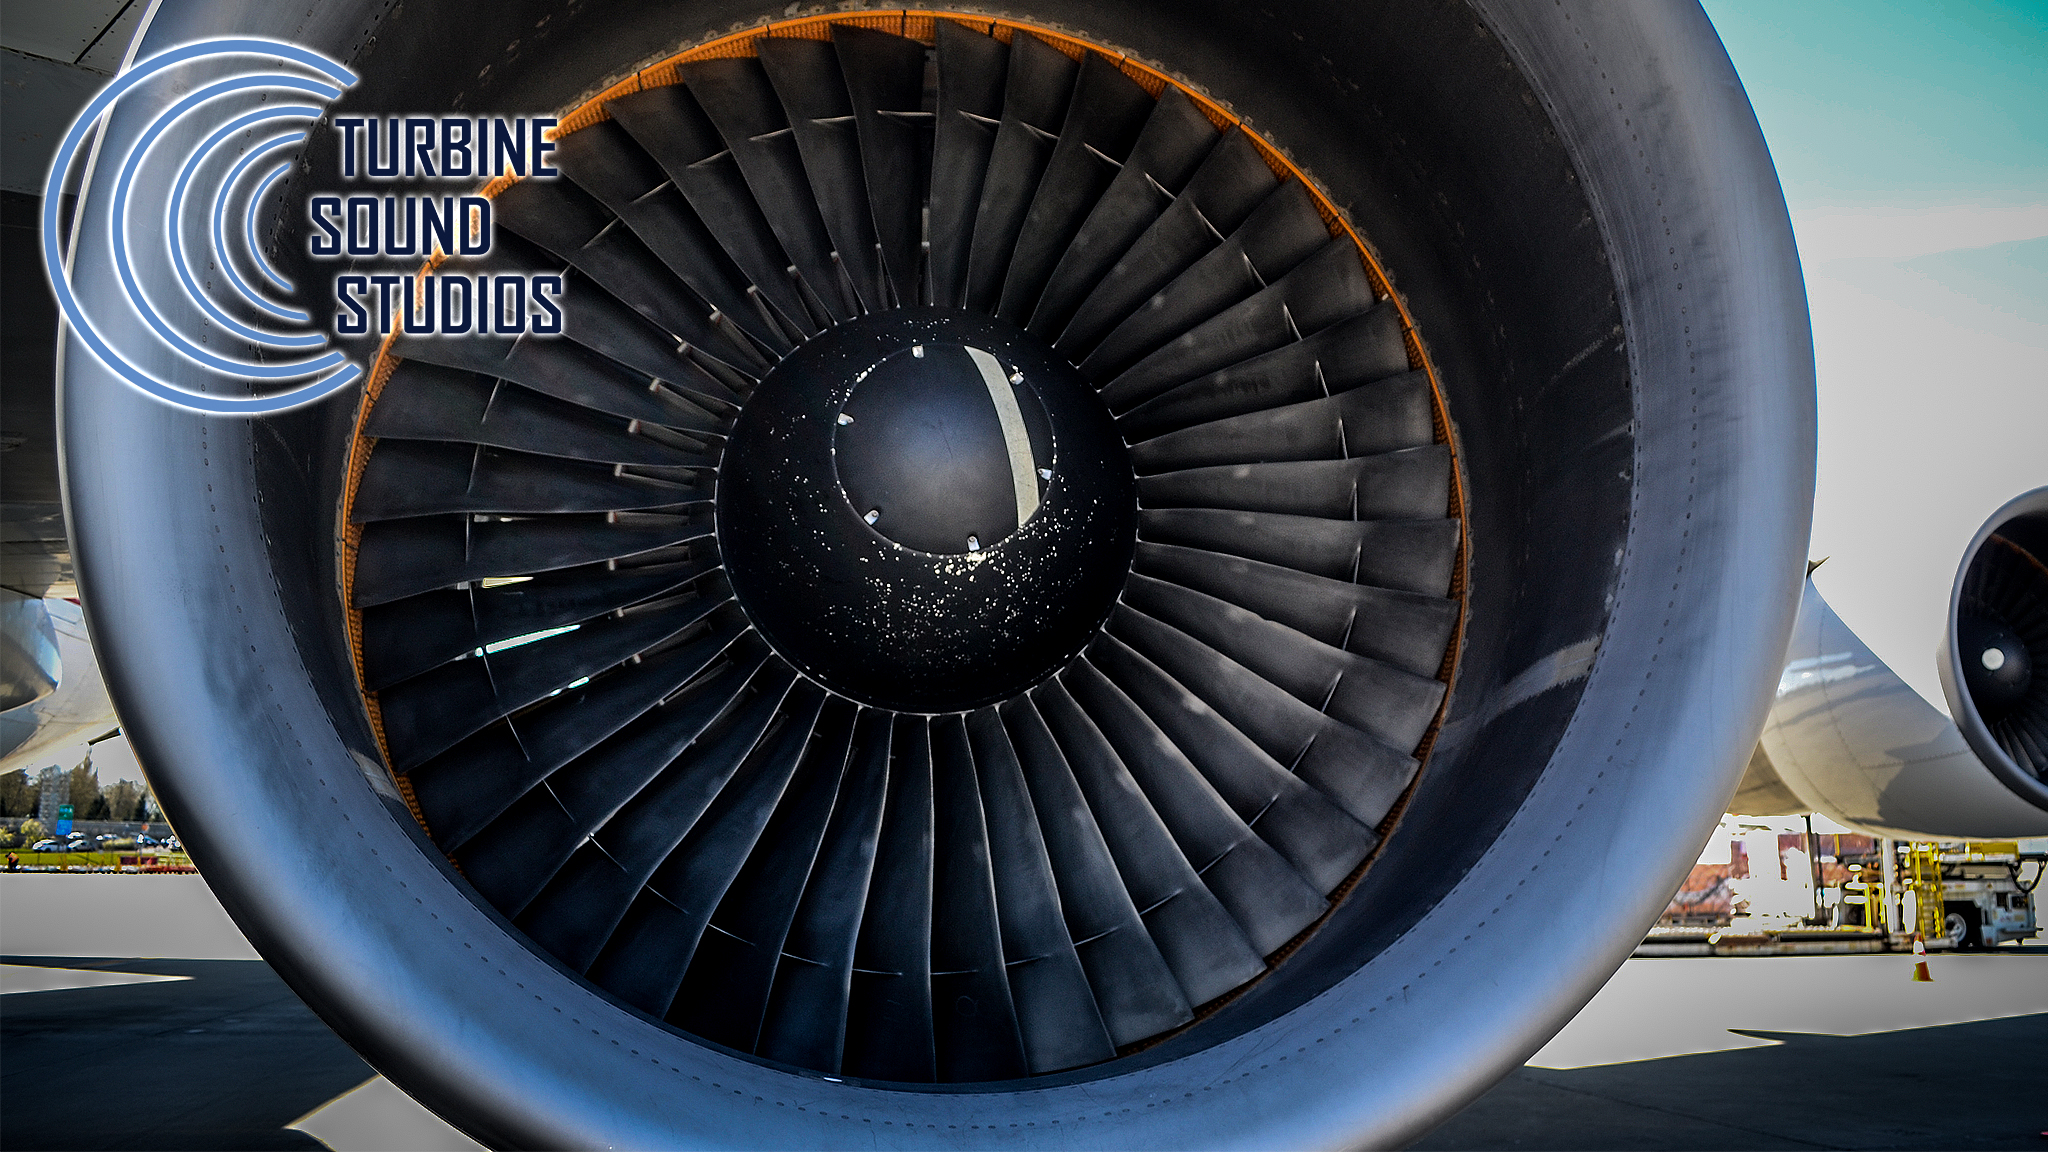 TURBINE SOUND STUDIOS - BOEING 747 PRATT & WHITNEY JT-9D-7R4 PILOT EDITION SOUNDPACKAGE FS2004